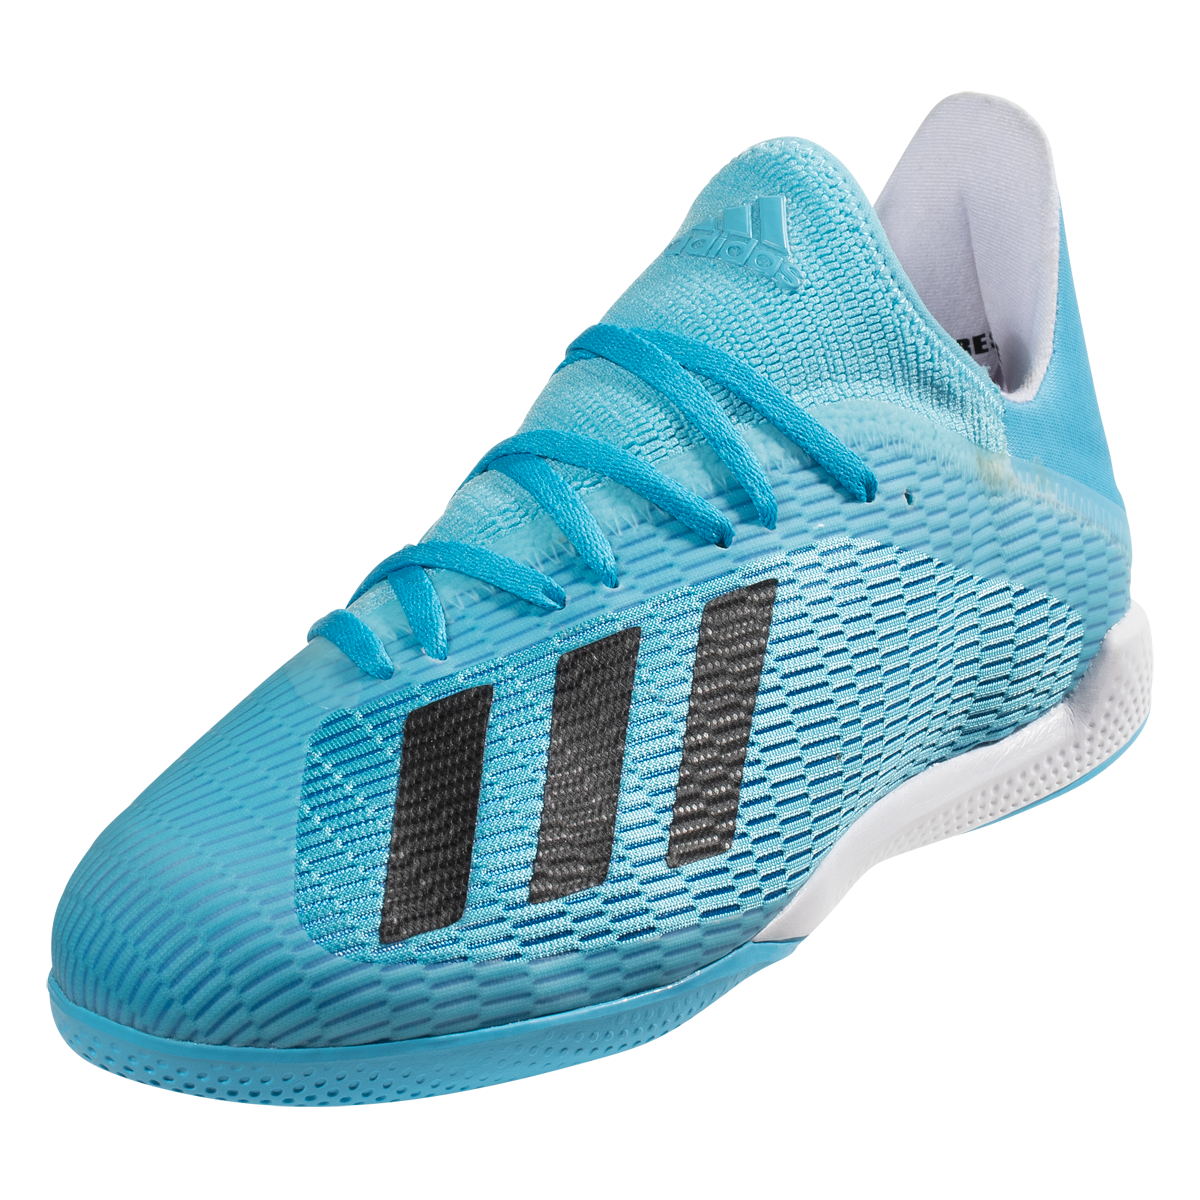 Adidas X 19 3 In Indoor Soccer Shoes Cyan Black Pink 10 5 In 2020 Soccer Shoes Indoor Soccer Adidas